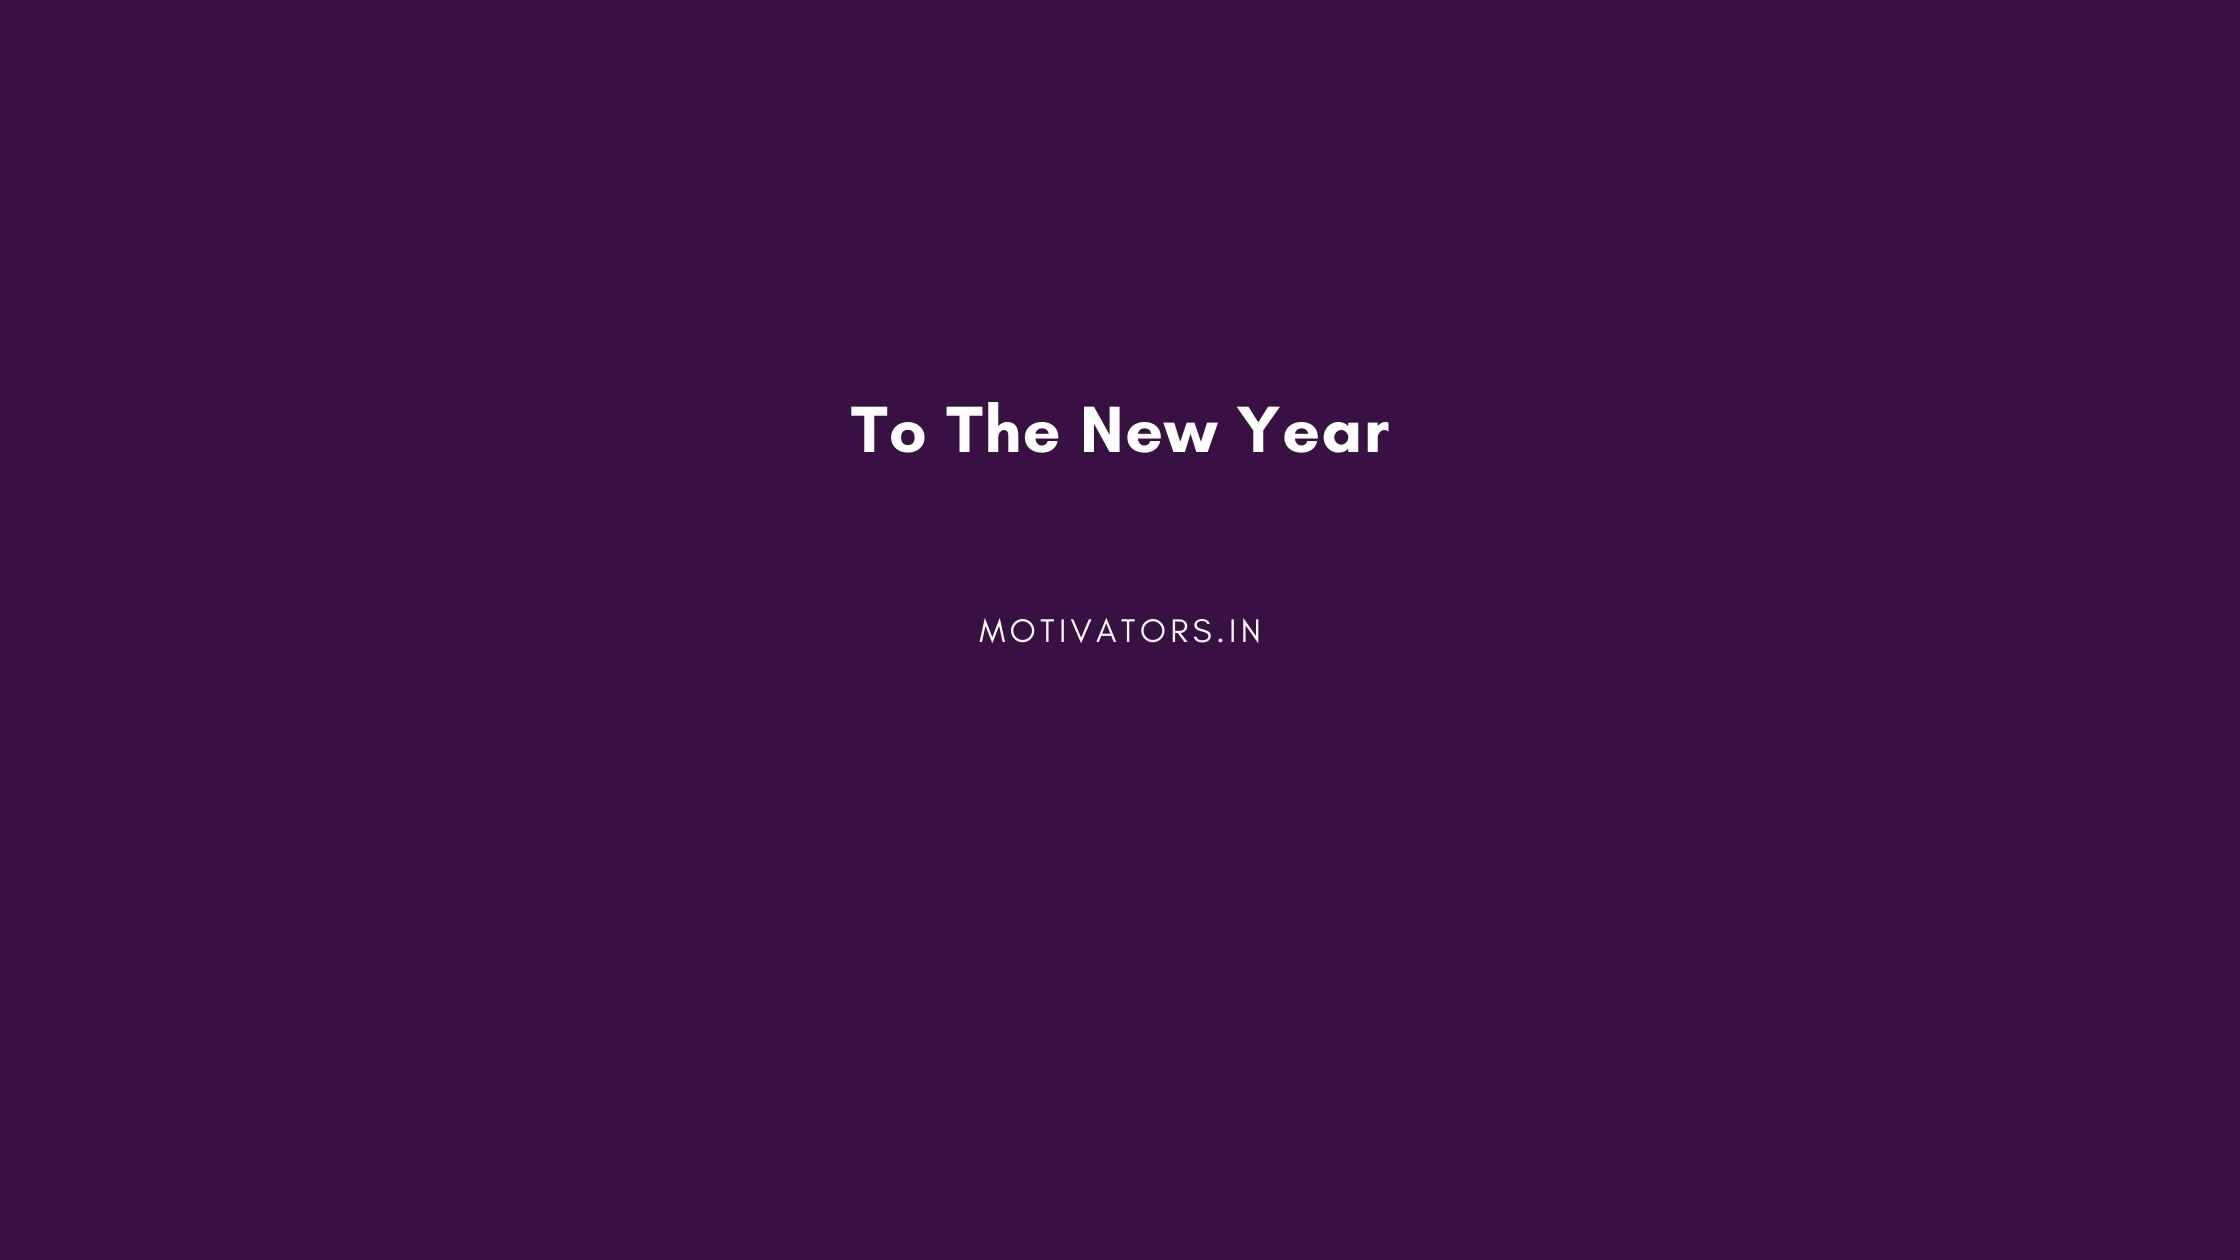 To The New Year